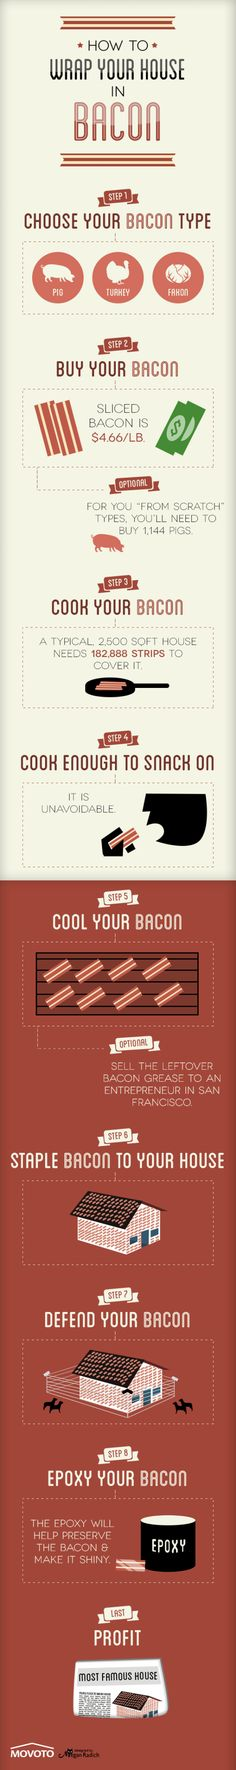 How to wrap your house in bacon. Great advice.